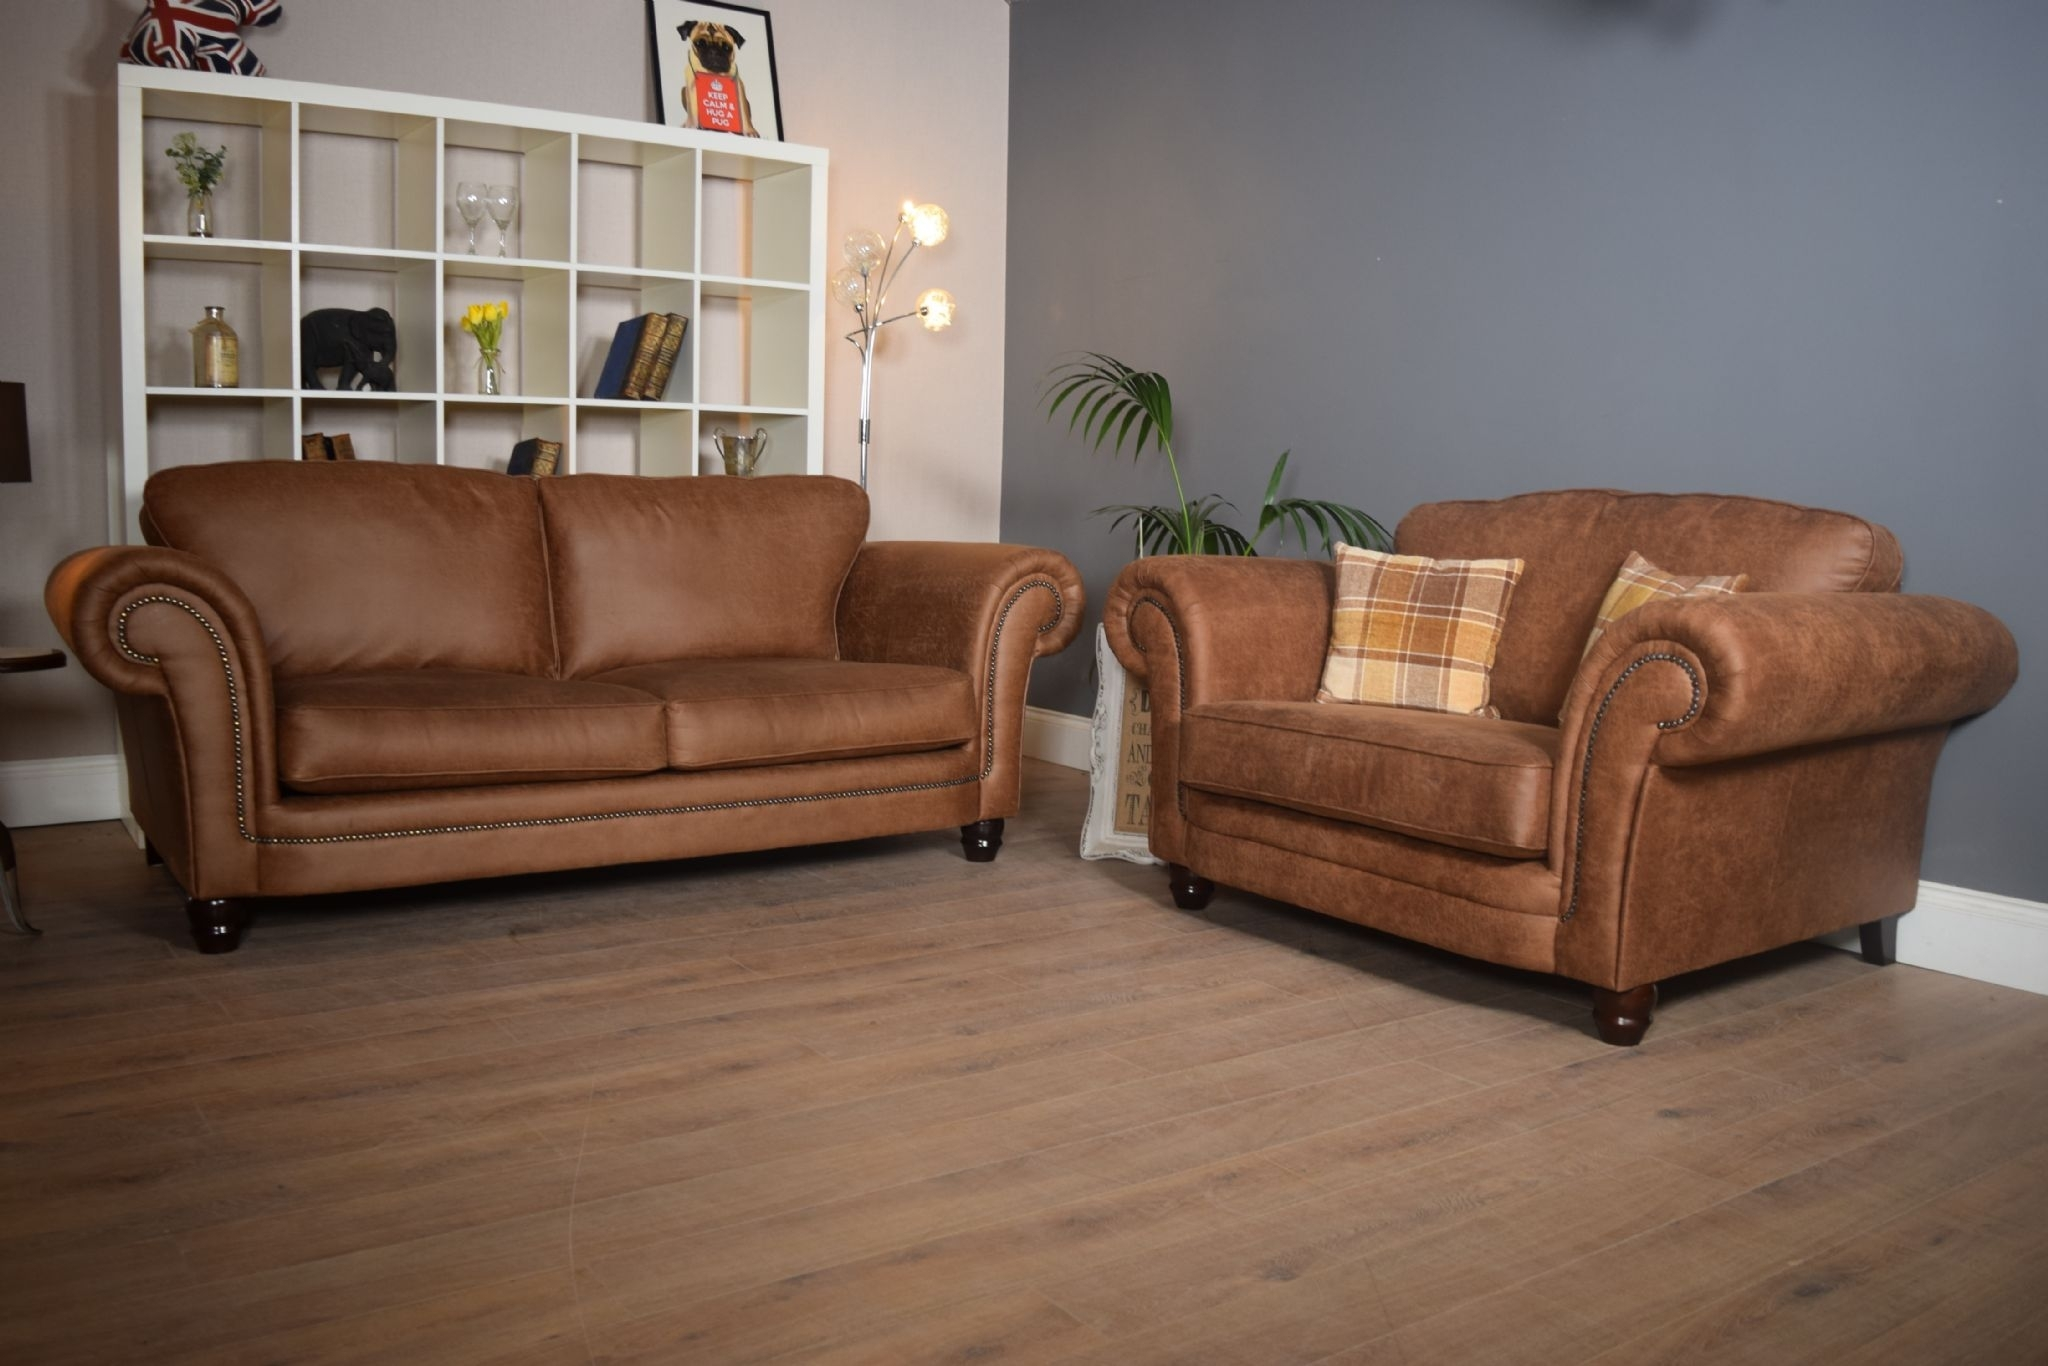 Set Abbey Downton 3 Seater Sofa & Large Cuddle Chair - Tan Fitted pertaining to 3 Seater Sofas and Cuddle Chairs (Image 5 of 10)